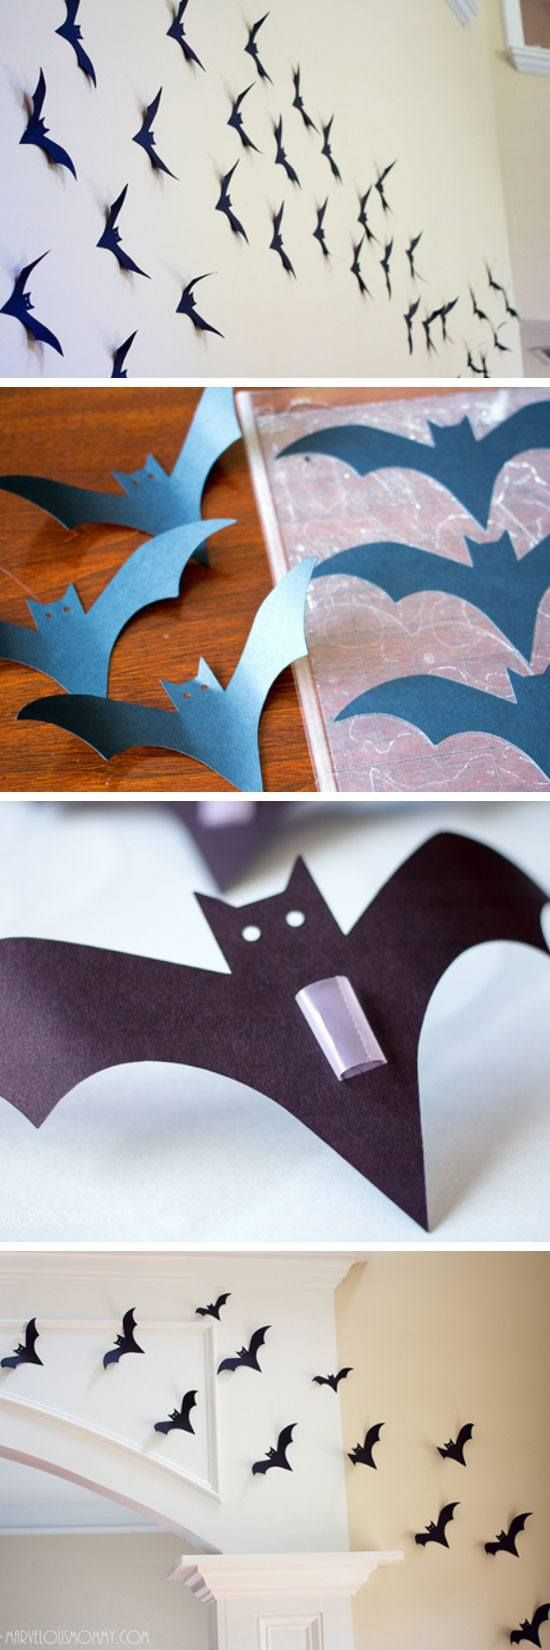 25 diy halloween decorating ideas for kids on a budget - Easy Halloween Decorating Ideas